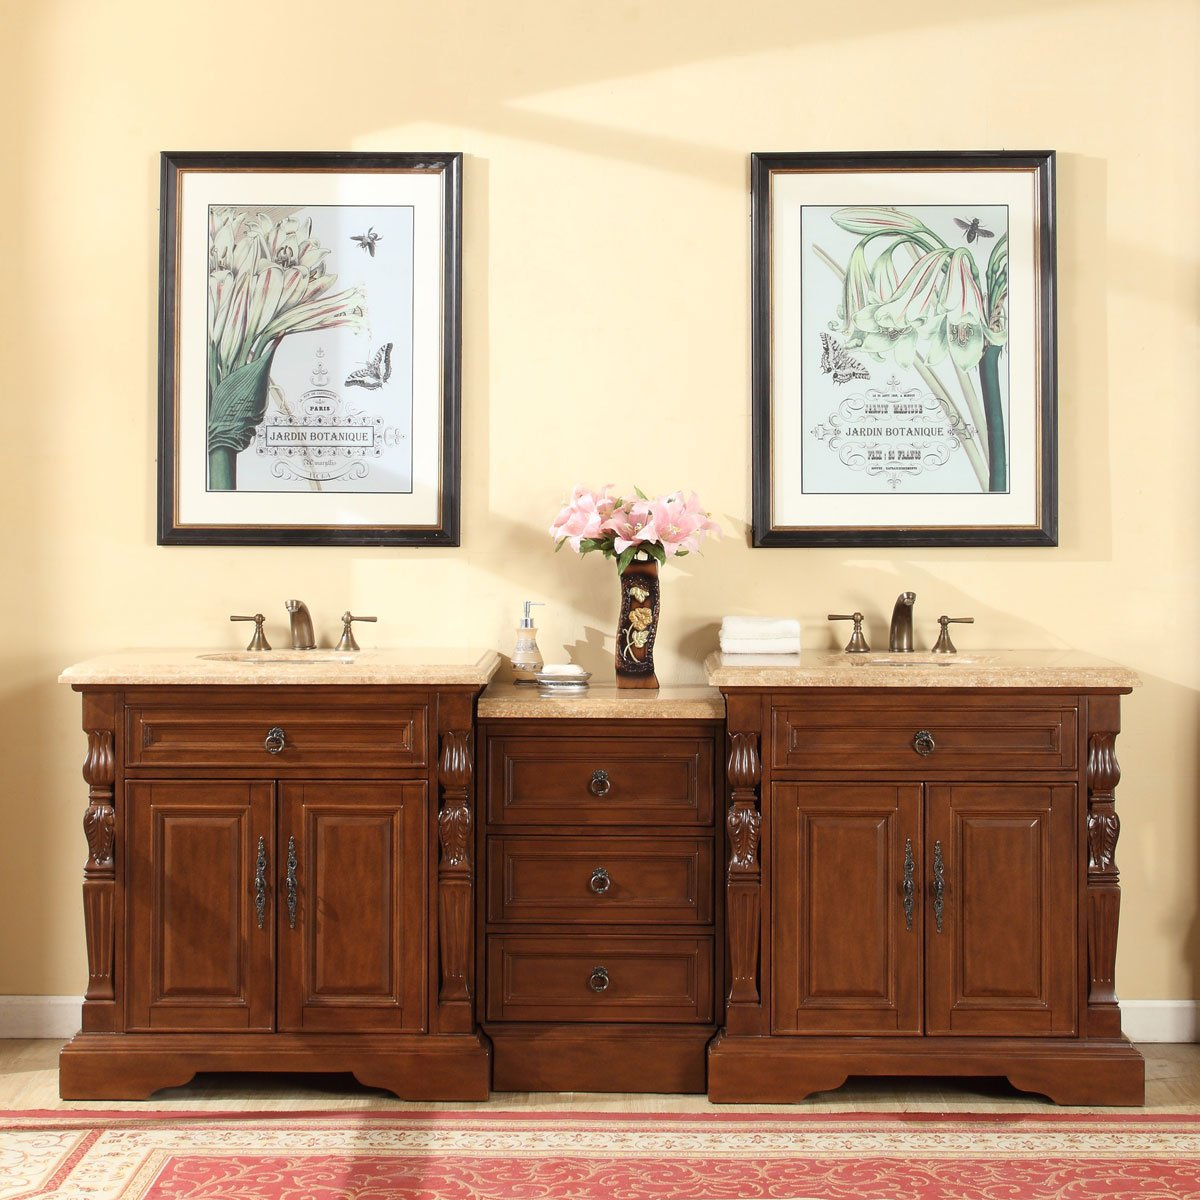 Silkroad Exclusive Bathroom Vanity Travertine Top Double Sink Cabinet, 90'' by Silkroad Exclusive